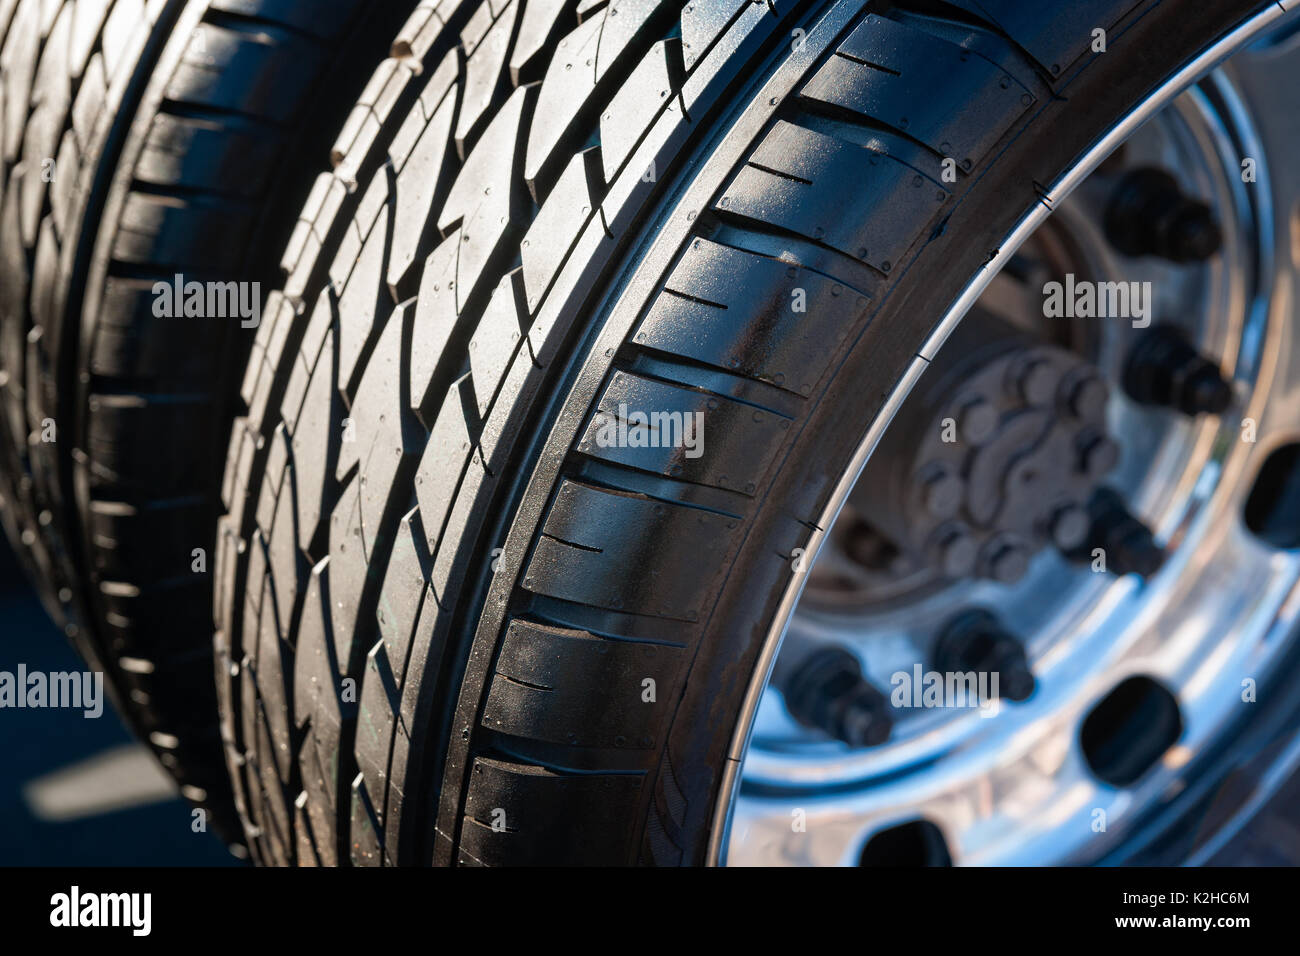 Closeup view of a dual tire wheel of a modern sports car. Black rubber dual tire and metal alloy web of the wheel. - Stock Image